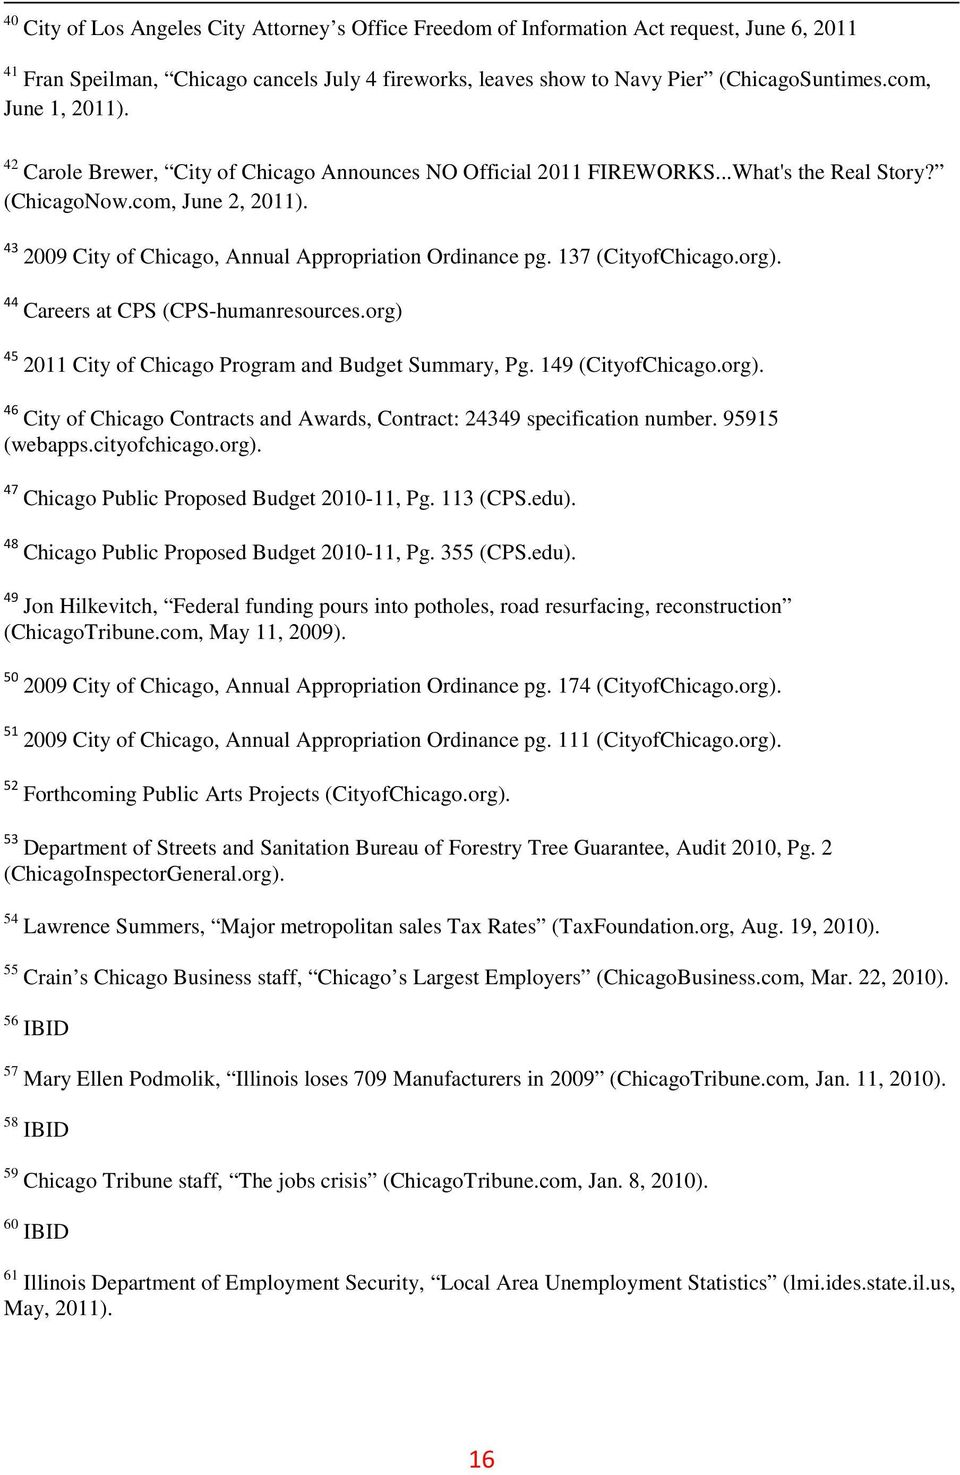 43 2009 City of Chicago, Annual Appropriation Ordinance pg. 137 (CityofChicago.org). 44 Careers at CPS (CPS-humanresources.org) 45 2011 City of Chicago Program and Budget Summary, Pg.